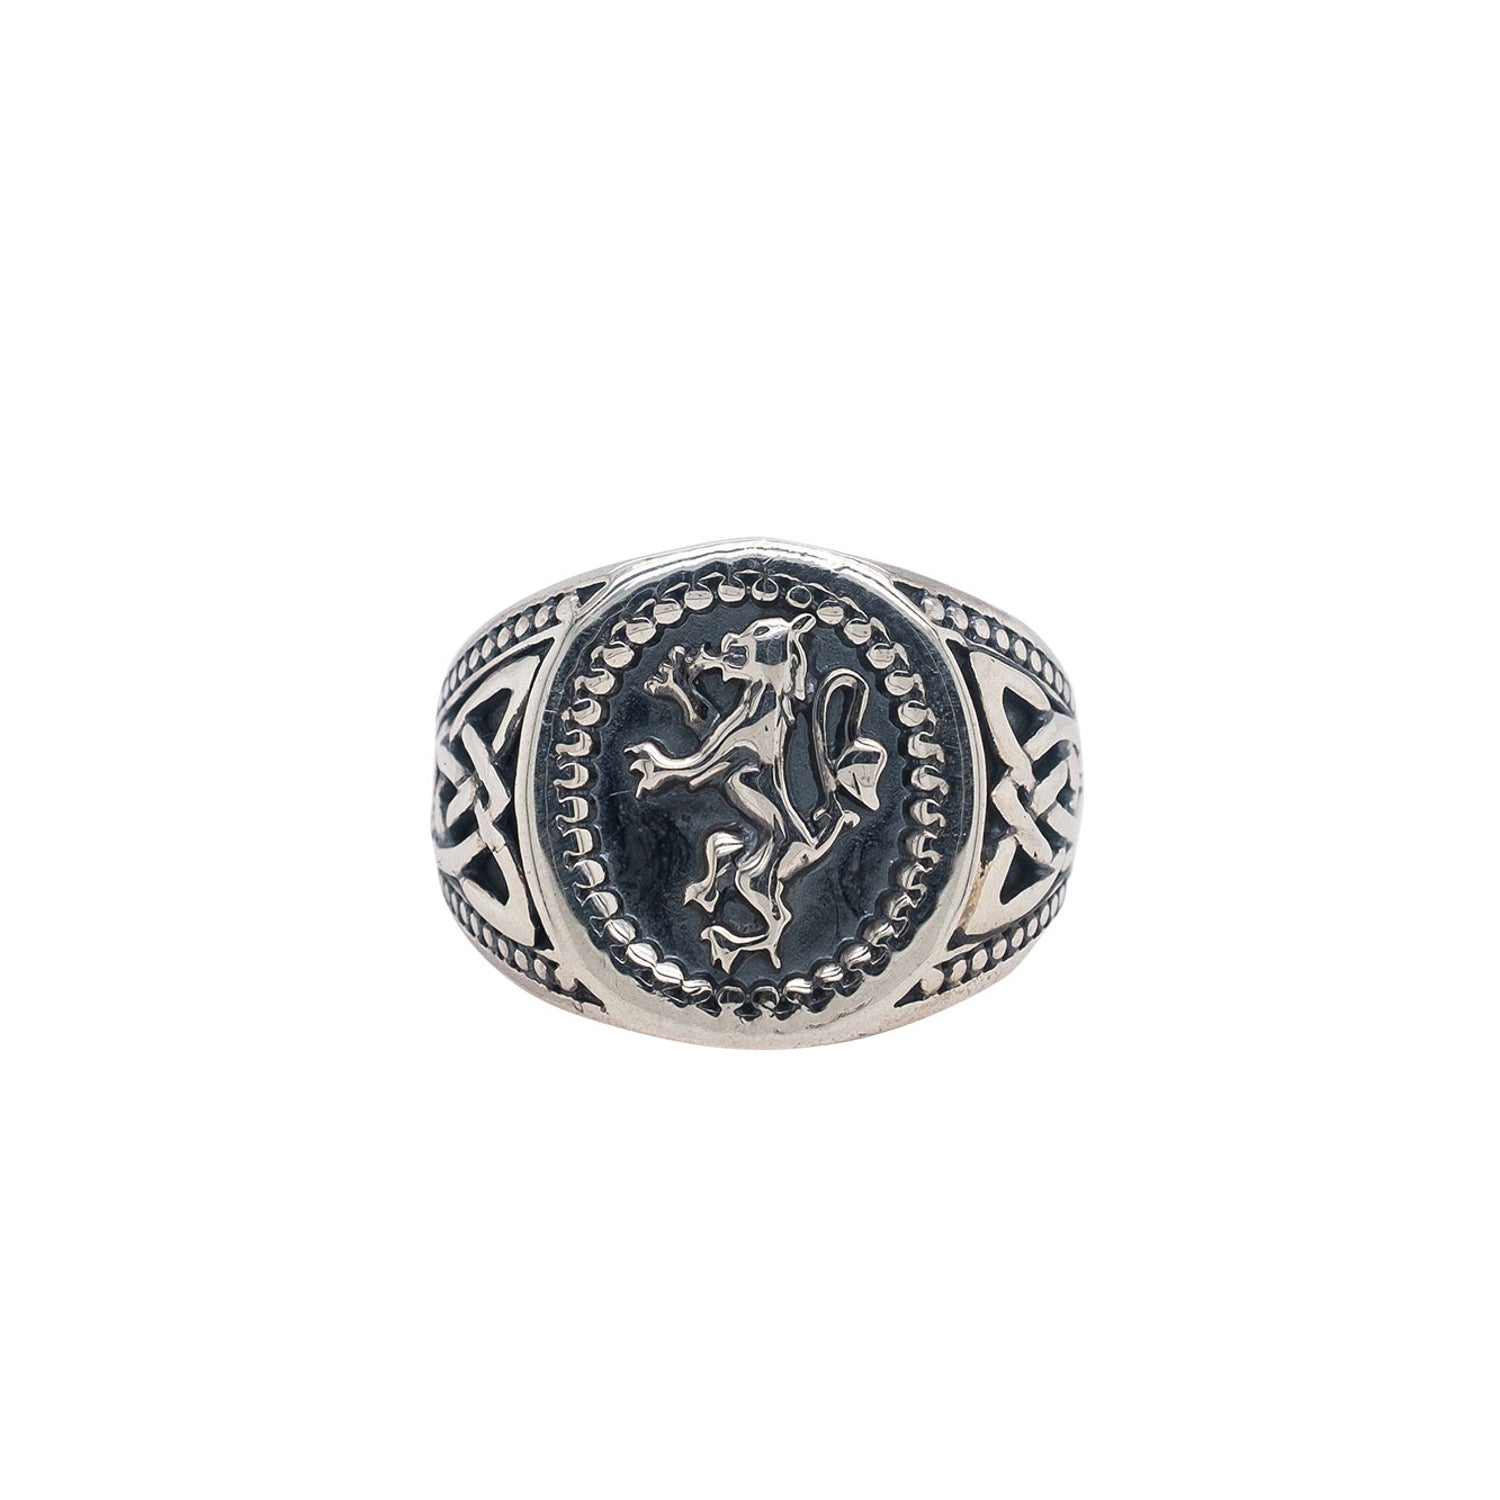 Ring Bands Lion Rampant Large Ring (Tapered) from welch and company jewelers near syracuse ny